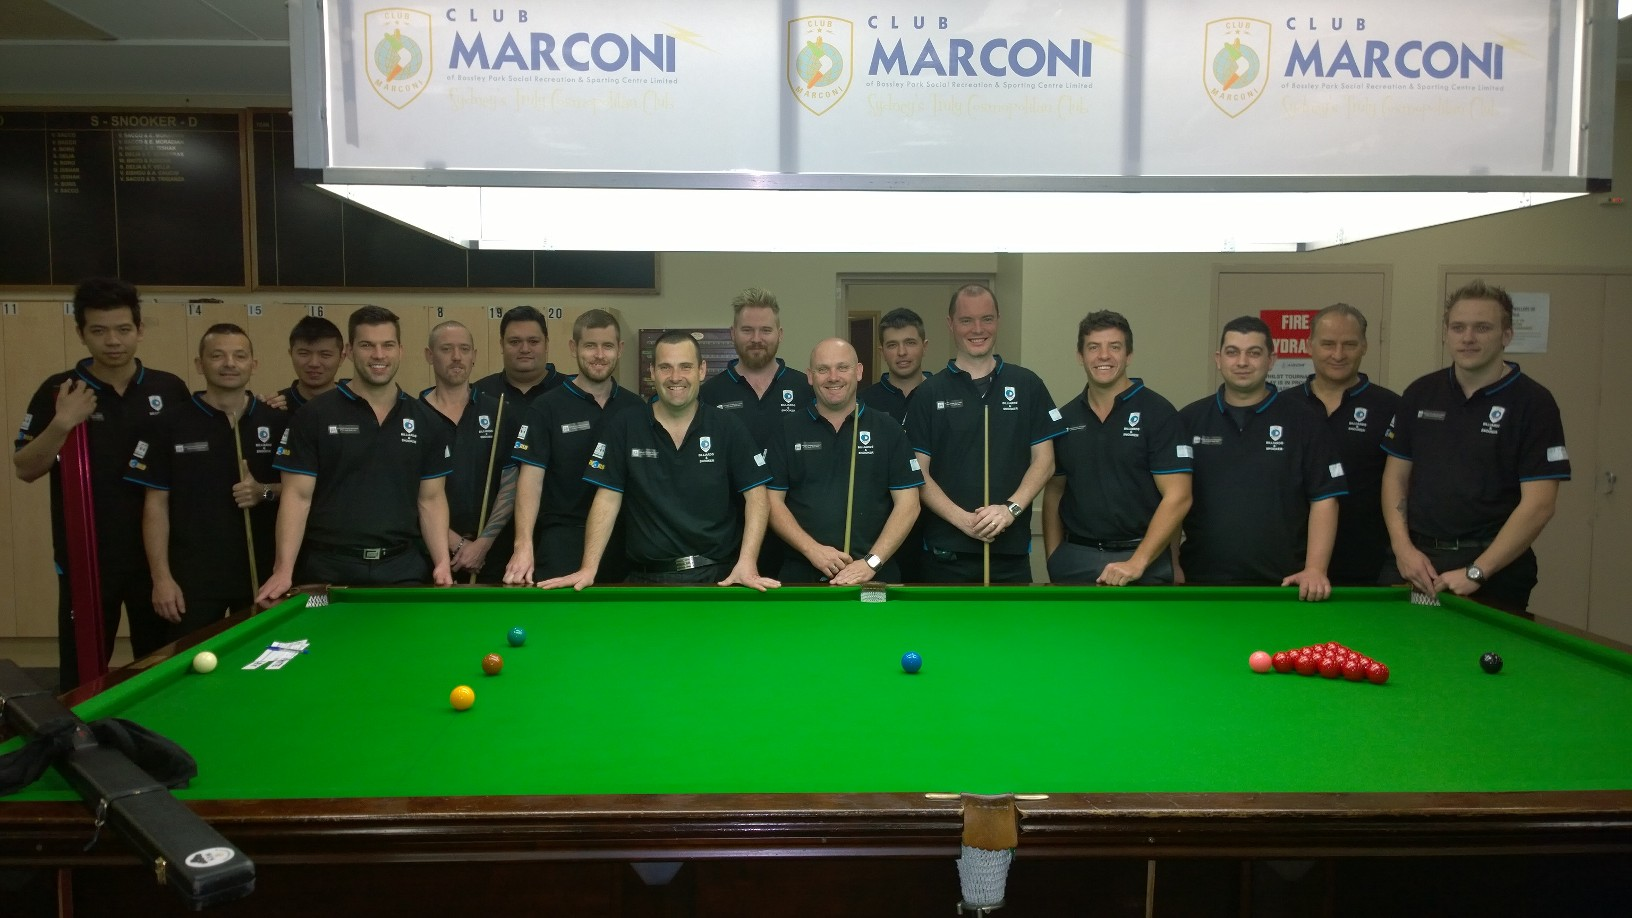 2015 Oceania snooker stars held at club marconi during the south pacific open snooker chapionship